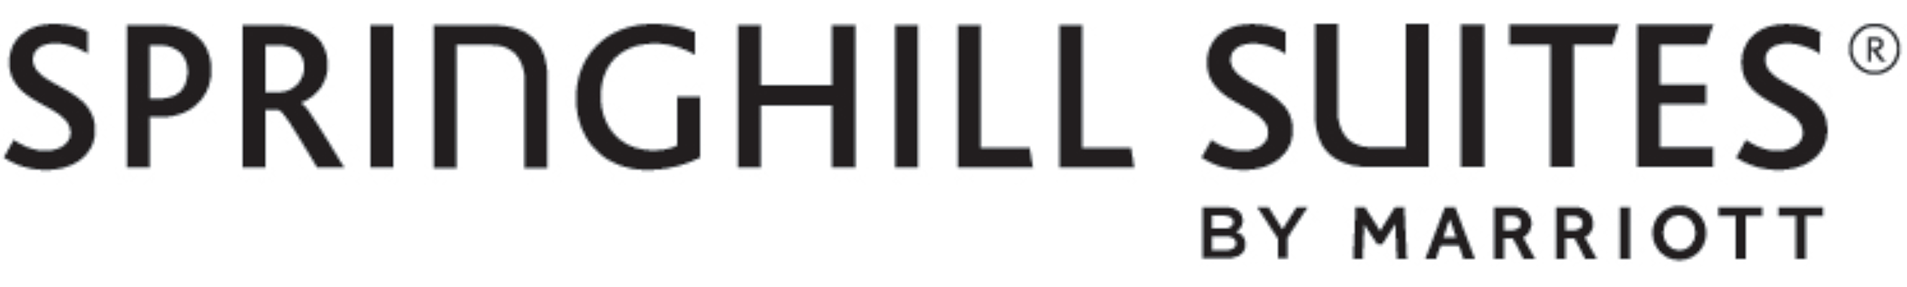 SPRINGHILL_LOGO_07.14.17_FH-01.png